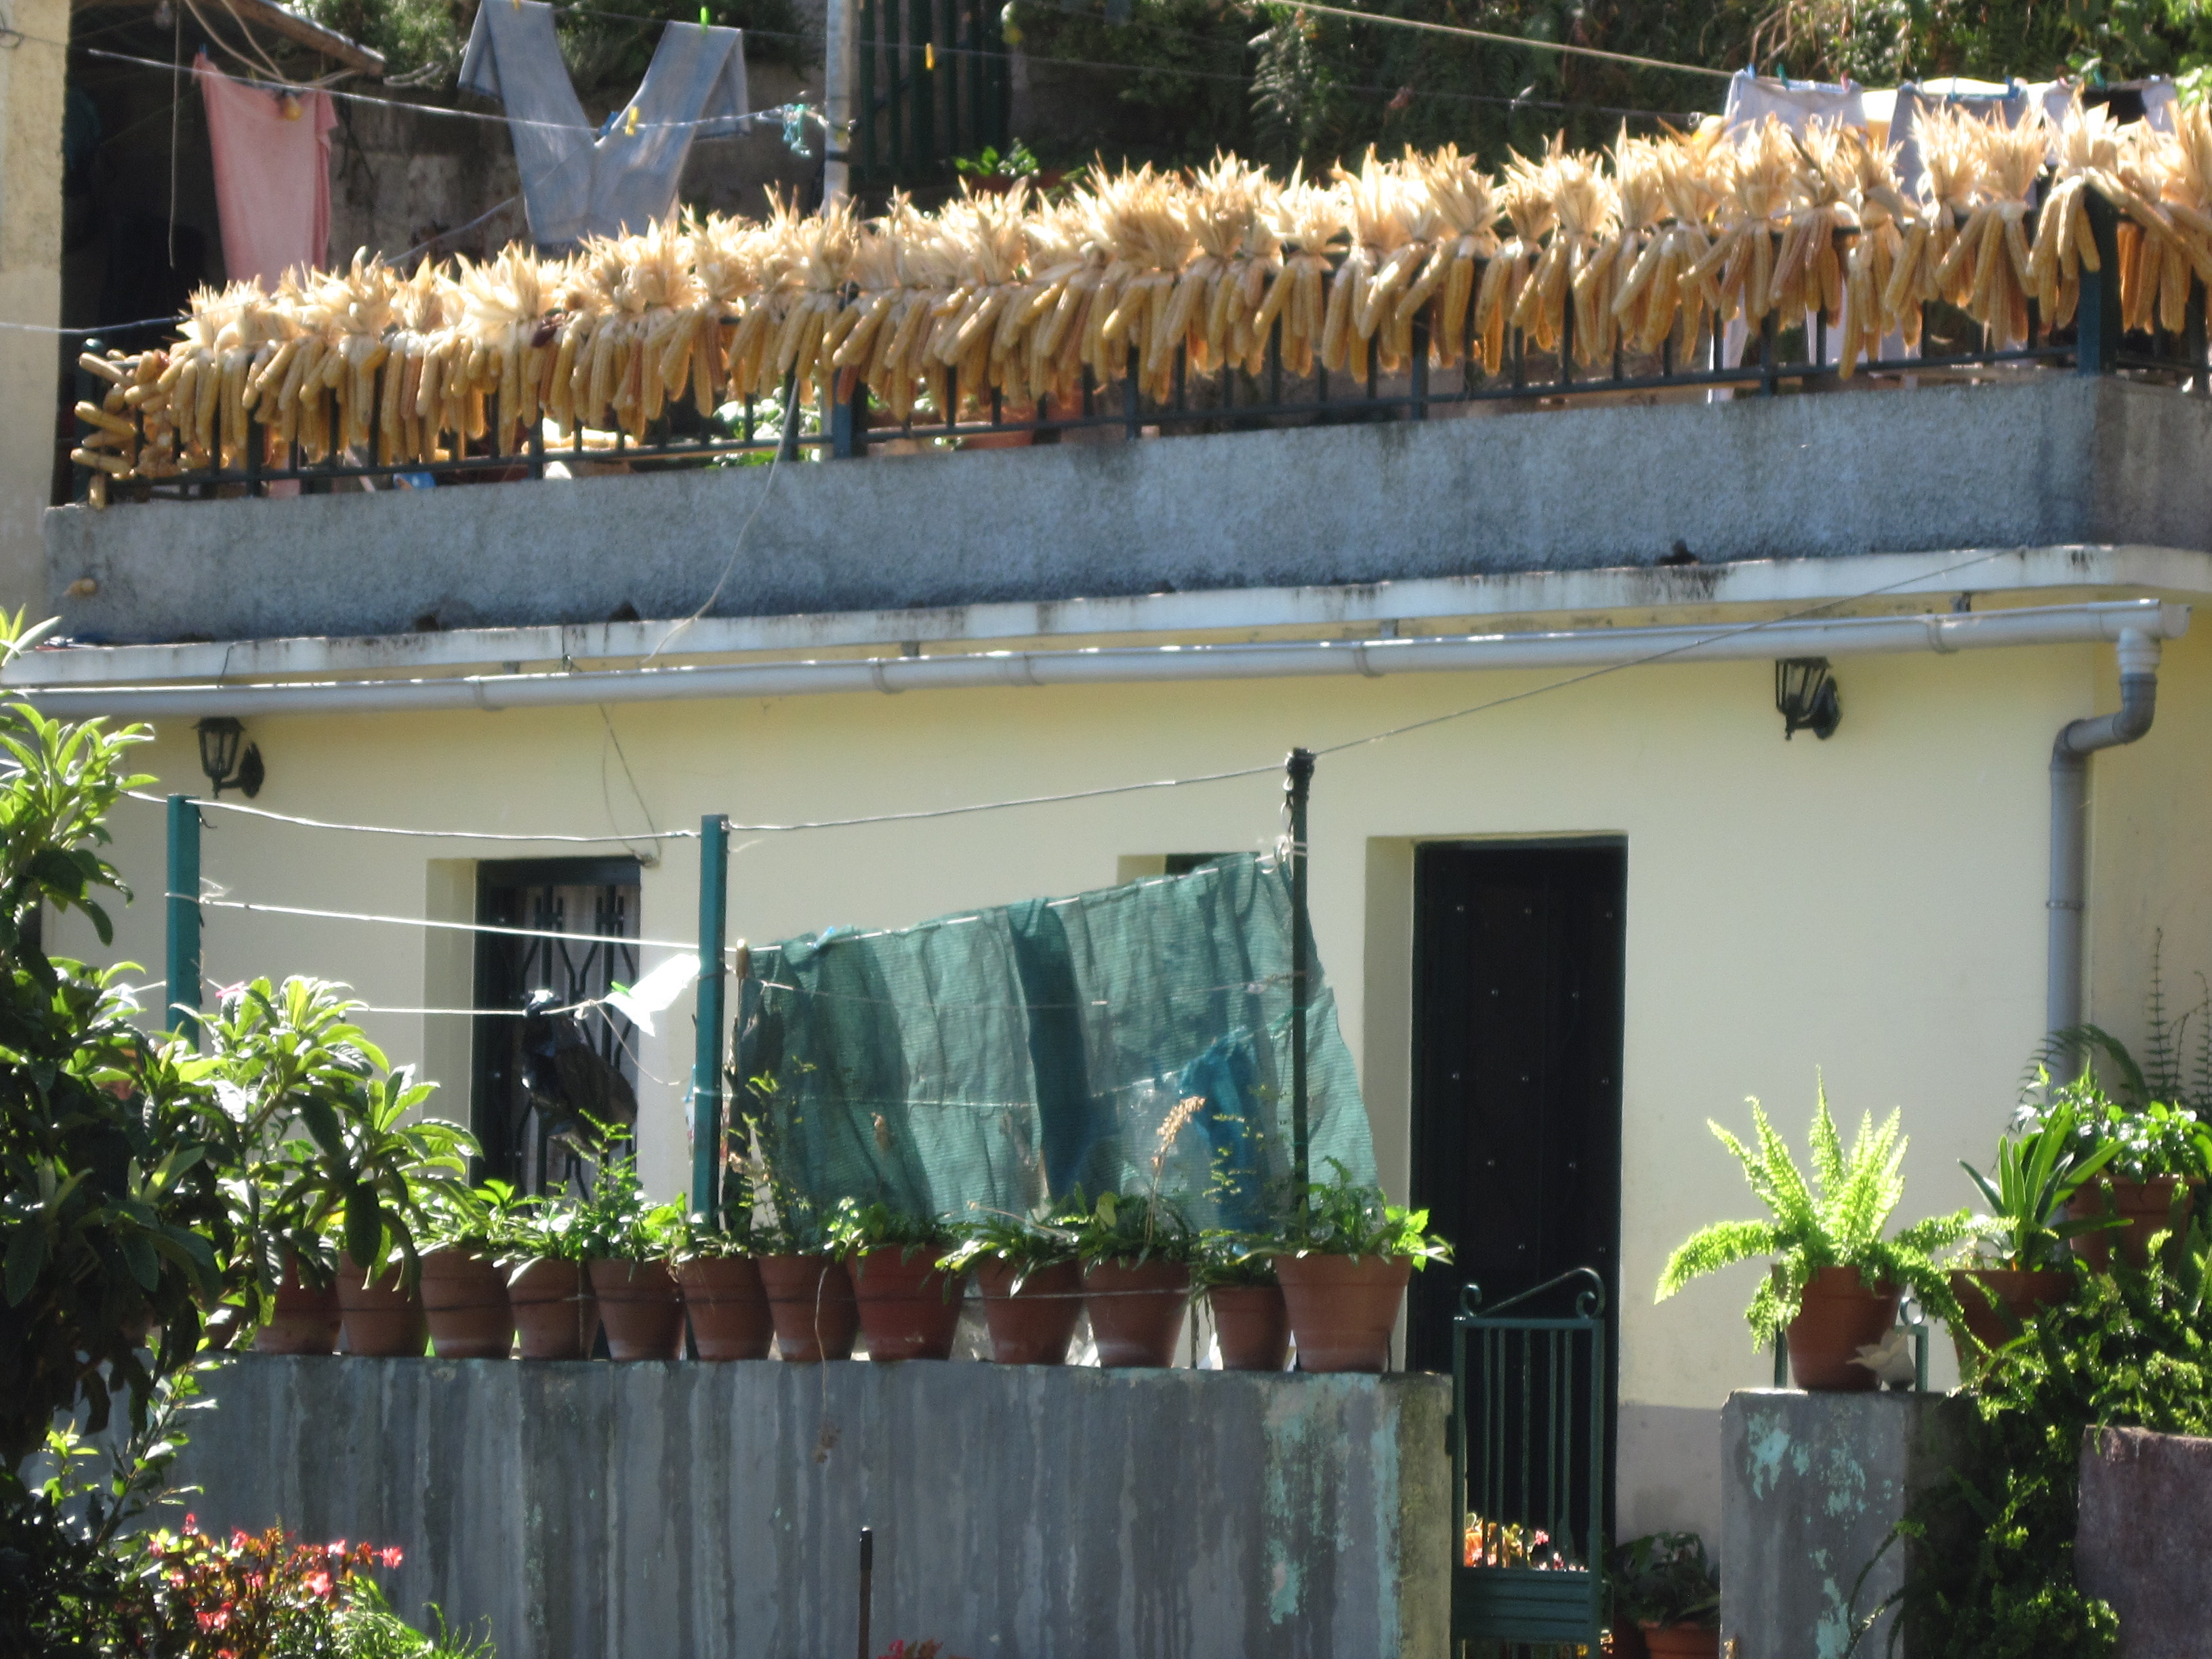 Sweetcorn drying in the sun